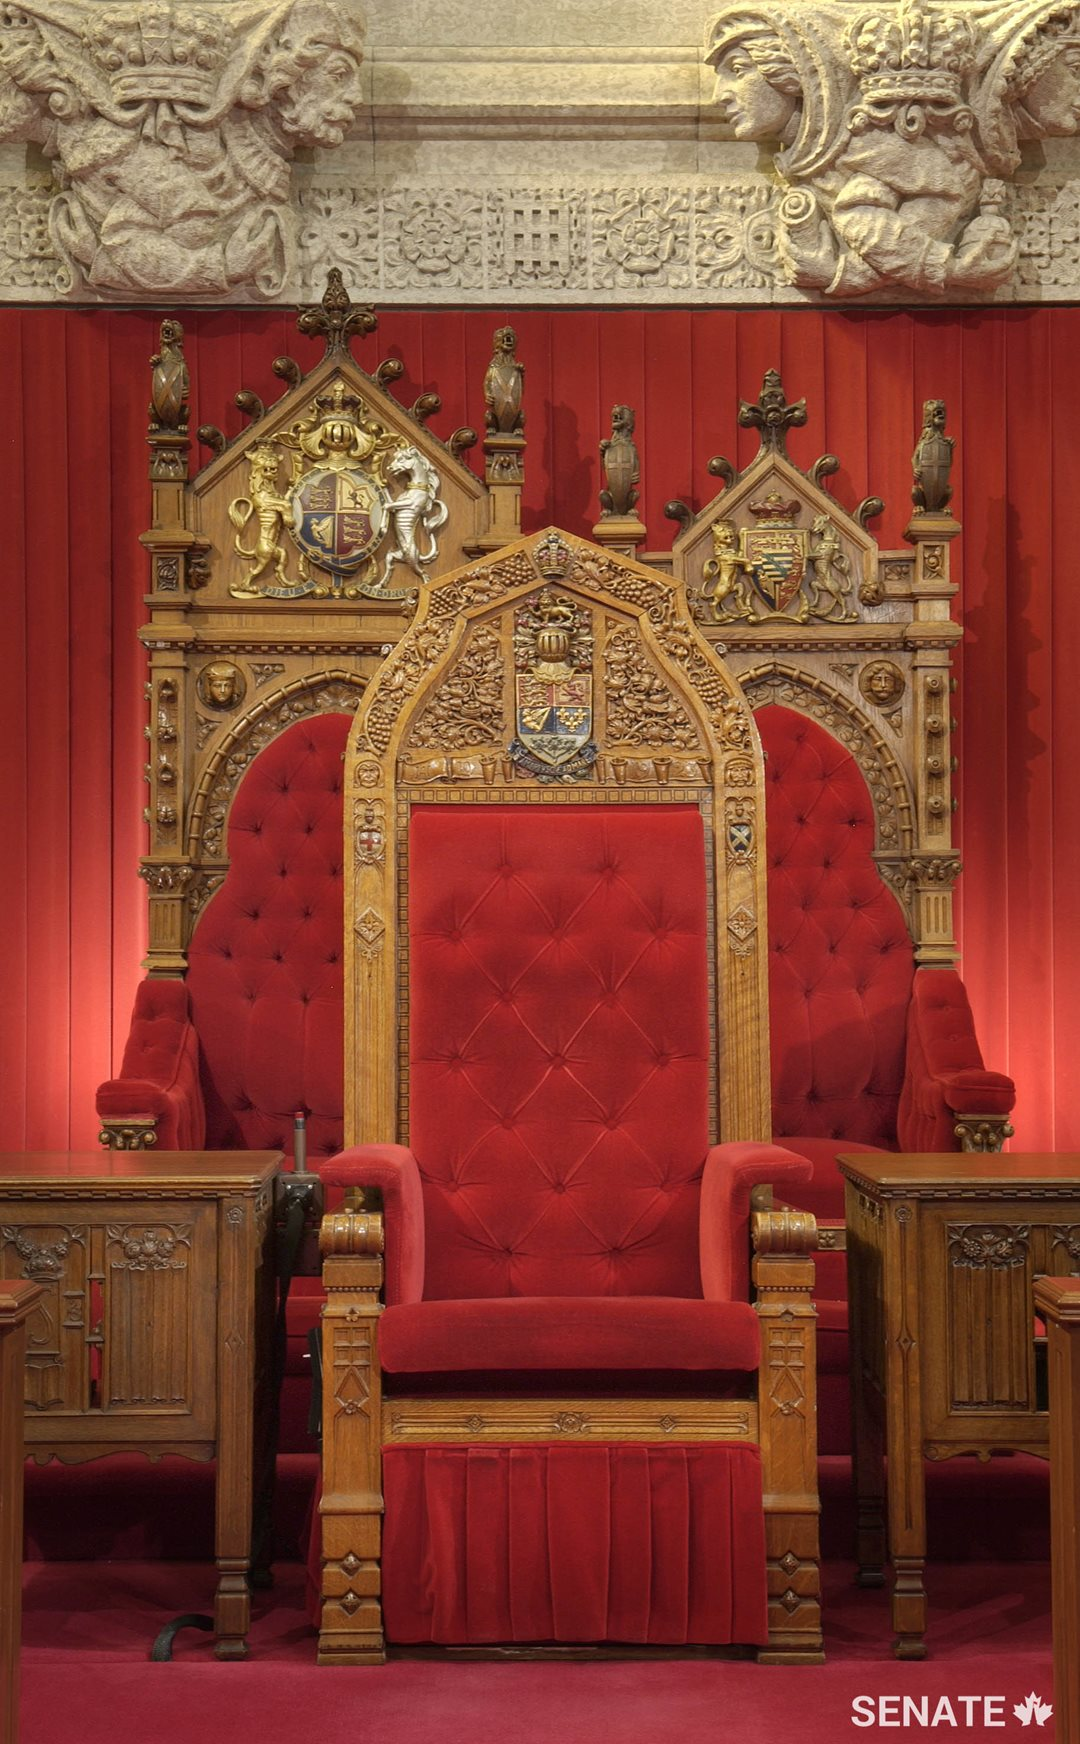 The monarch's and consort's thrones, carved in 1878, are among the very few Senate fixtures salvaged from the 1916 fire that destroyed the original Centre Block. The Senate Speaker's chair in front was carved in 1923. All three went into storage and less ornate versions created specifically for the new Senate Chamber are being used in the interim.